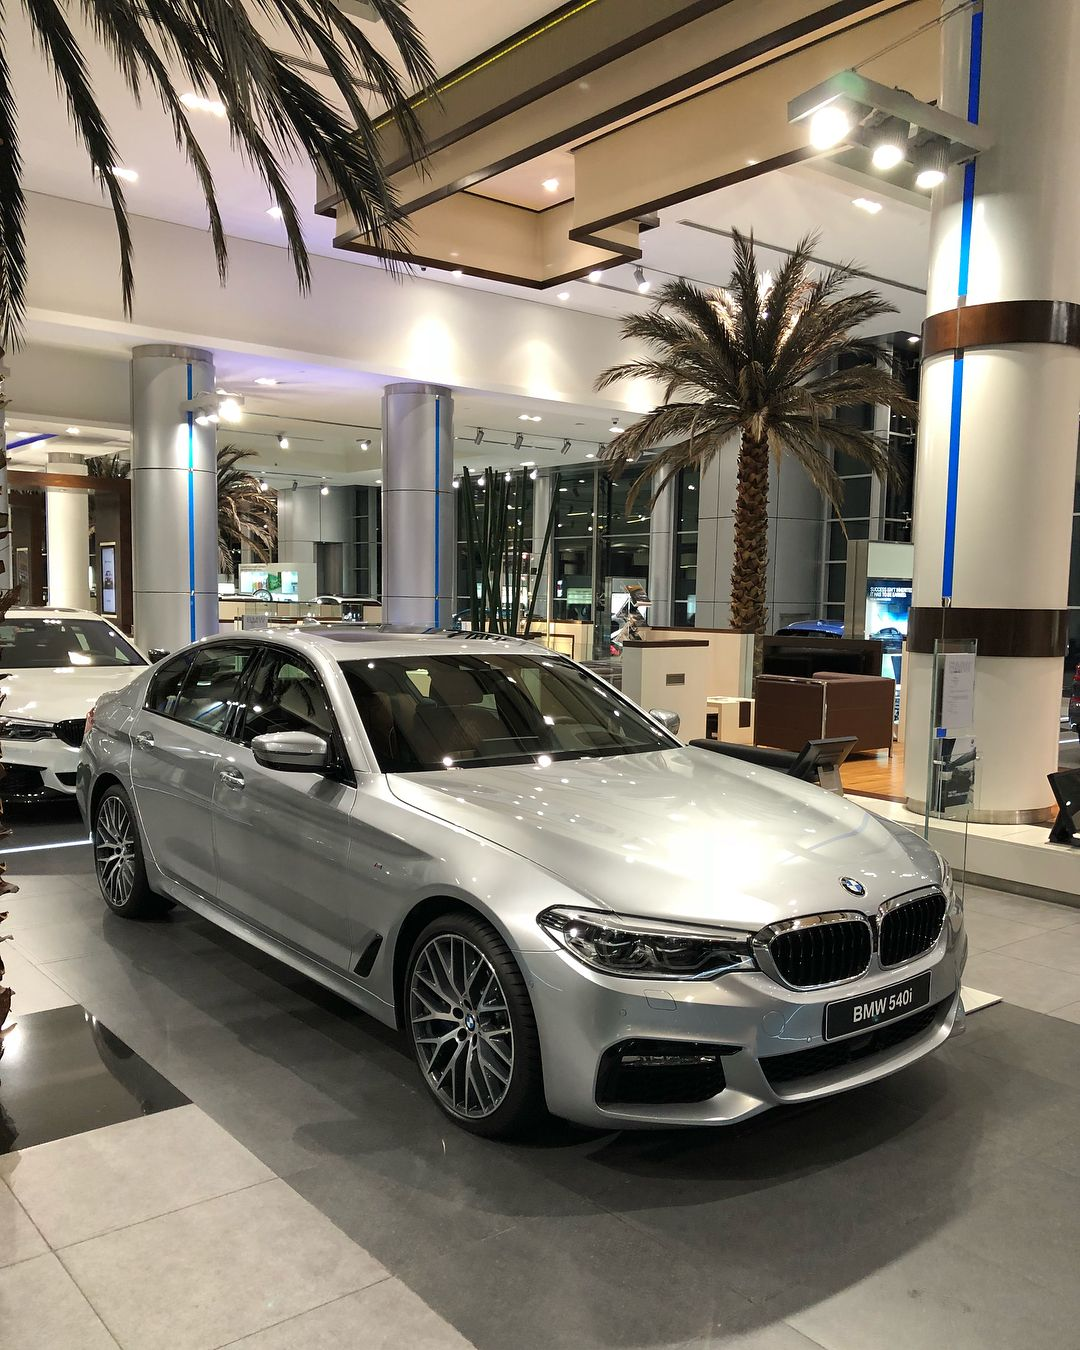 Bmw 540i Pure Metal Silver 6 Cylinders Inline Twin Power Turbo 340